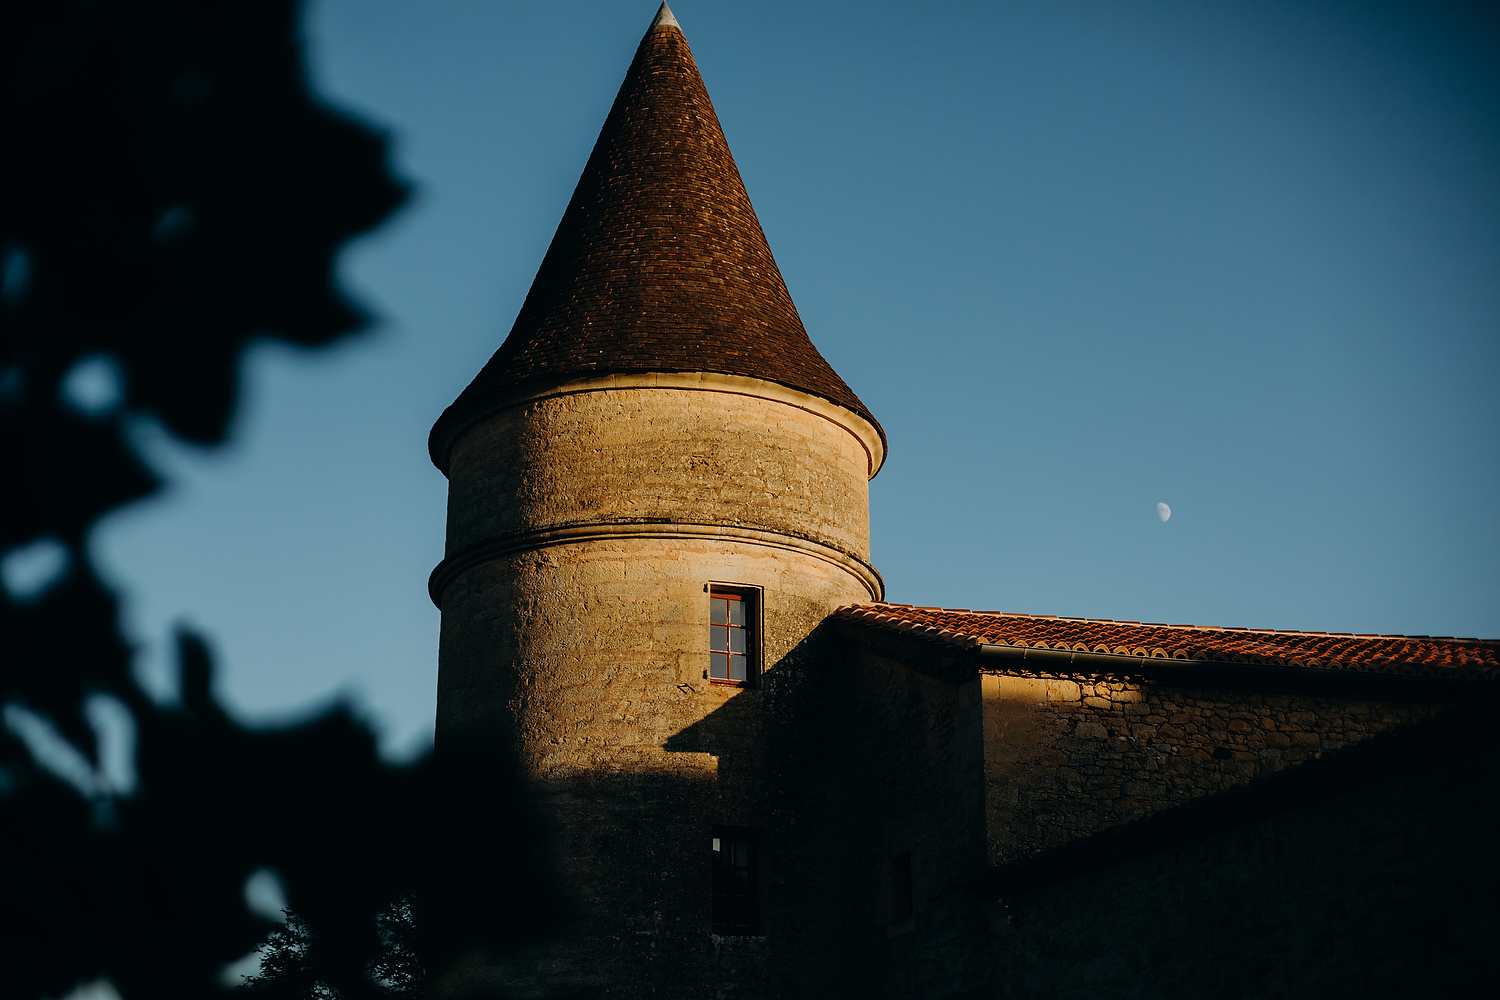 Chateau spire with moon in background